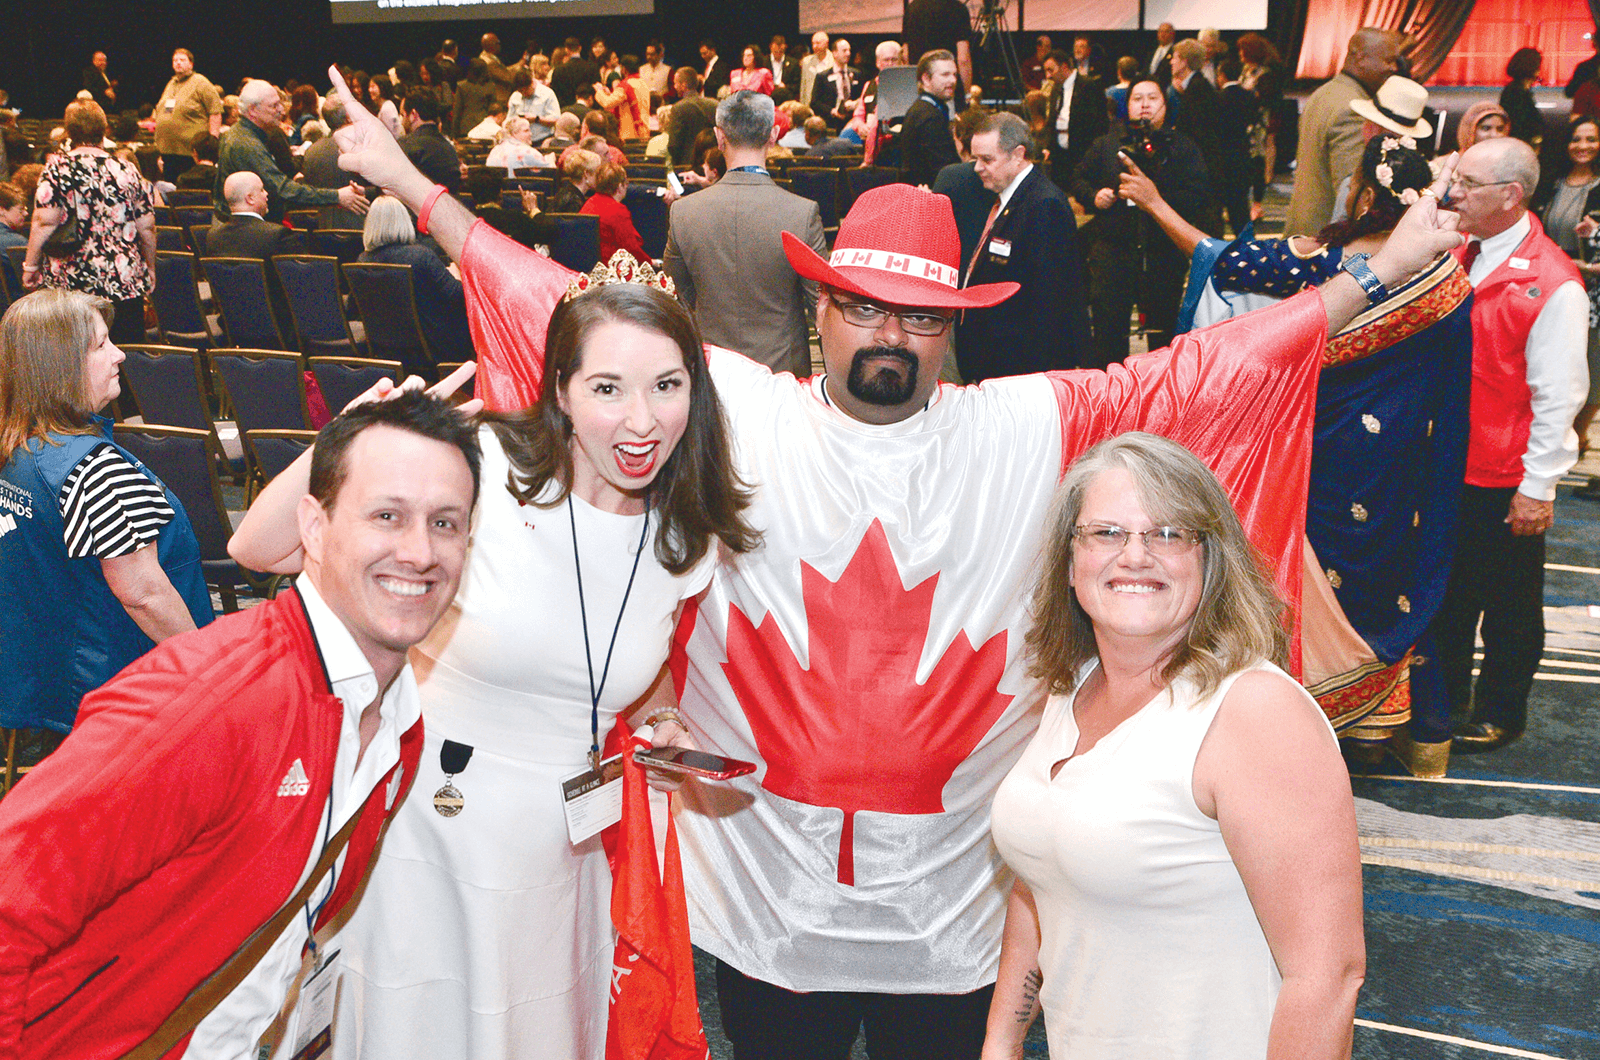 Canadian Toastmasters celebrate before Opening Ceremonies begin.